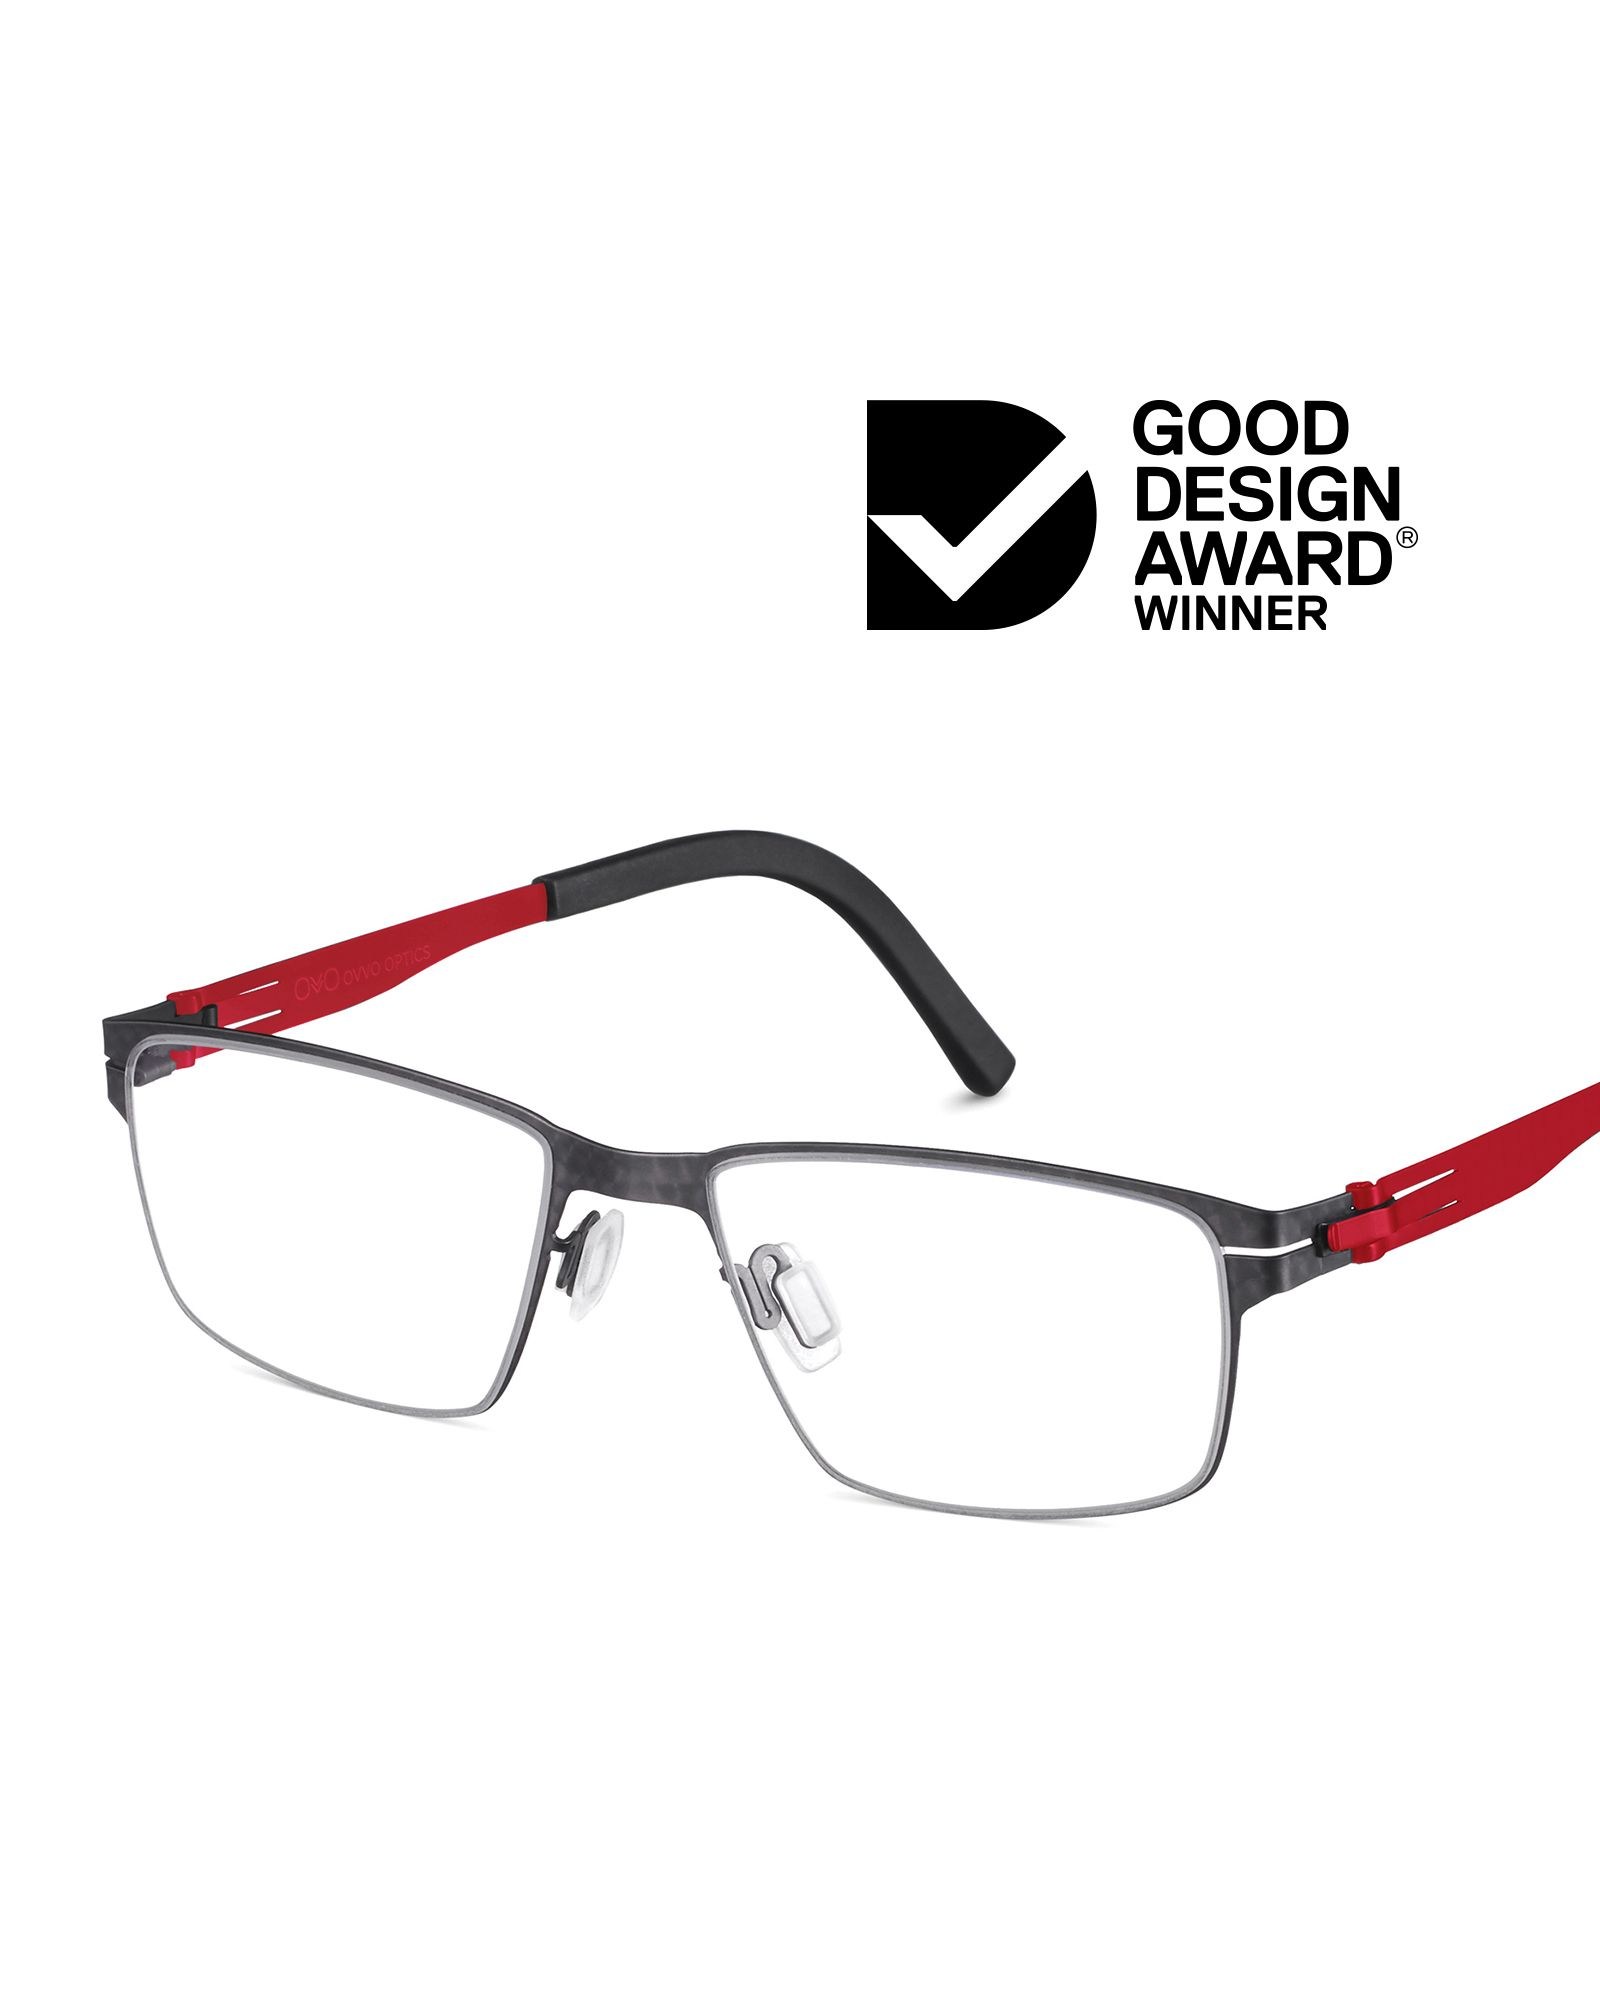 OVVO's Junior Collection is the proud recipient of one of Australia's most esteemed honors, the 2020 Good Design Award. Style Matty in black pattern with red temples celebrates the playful possibilities of design and innovation crafted from spacecraft surgical steel and titanium #OVVOoptics #JuniorCollection #ChildrensEyewear #GoodDesignAus #GoodDesignAustralia #gooddesignawards #designawards